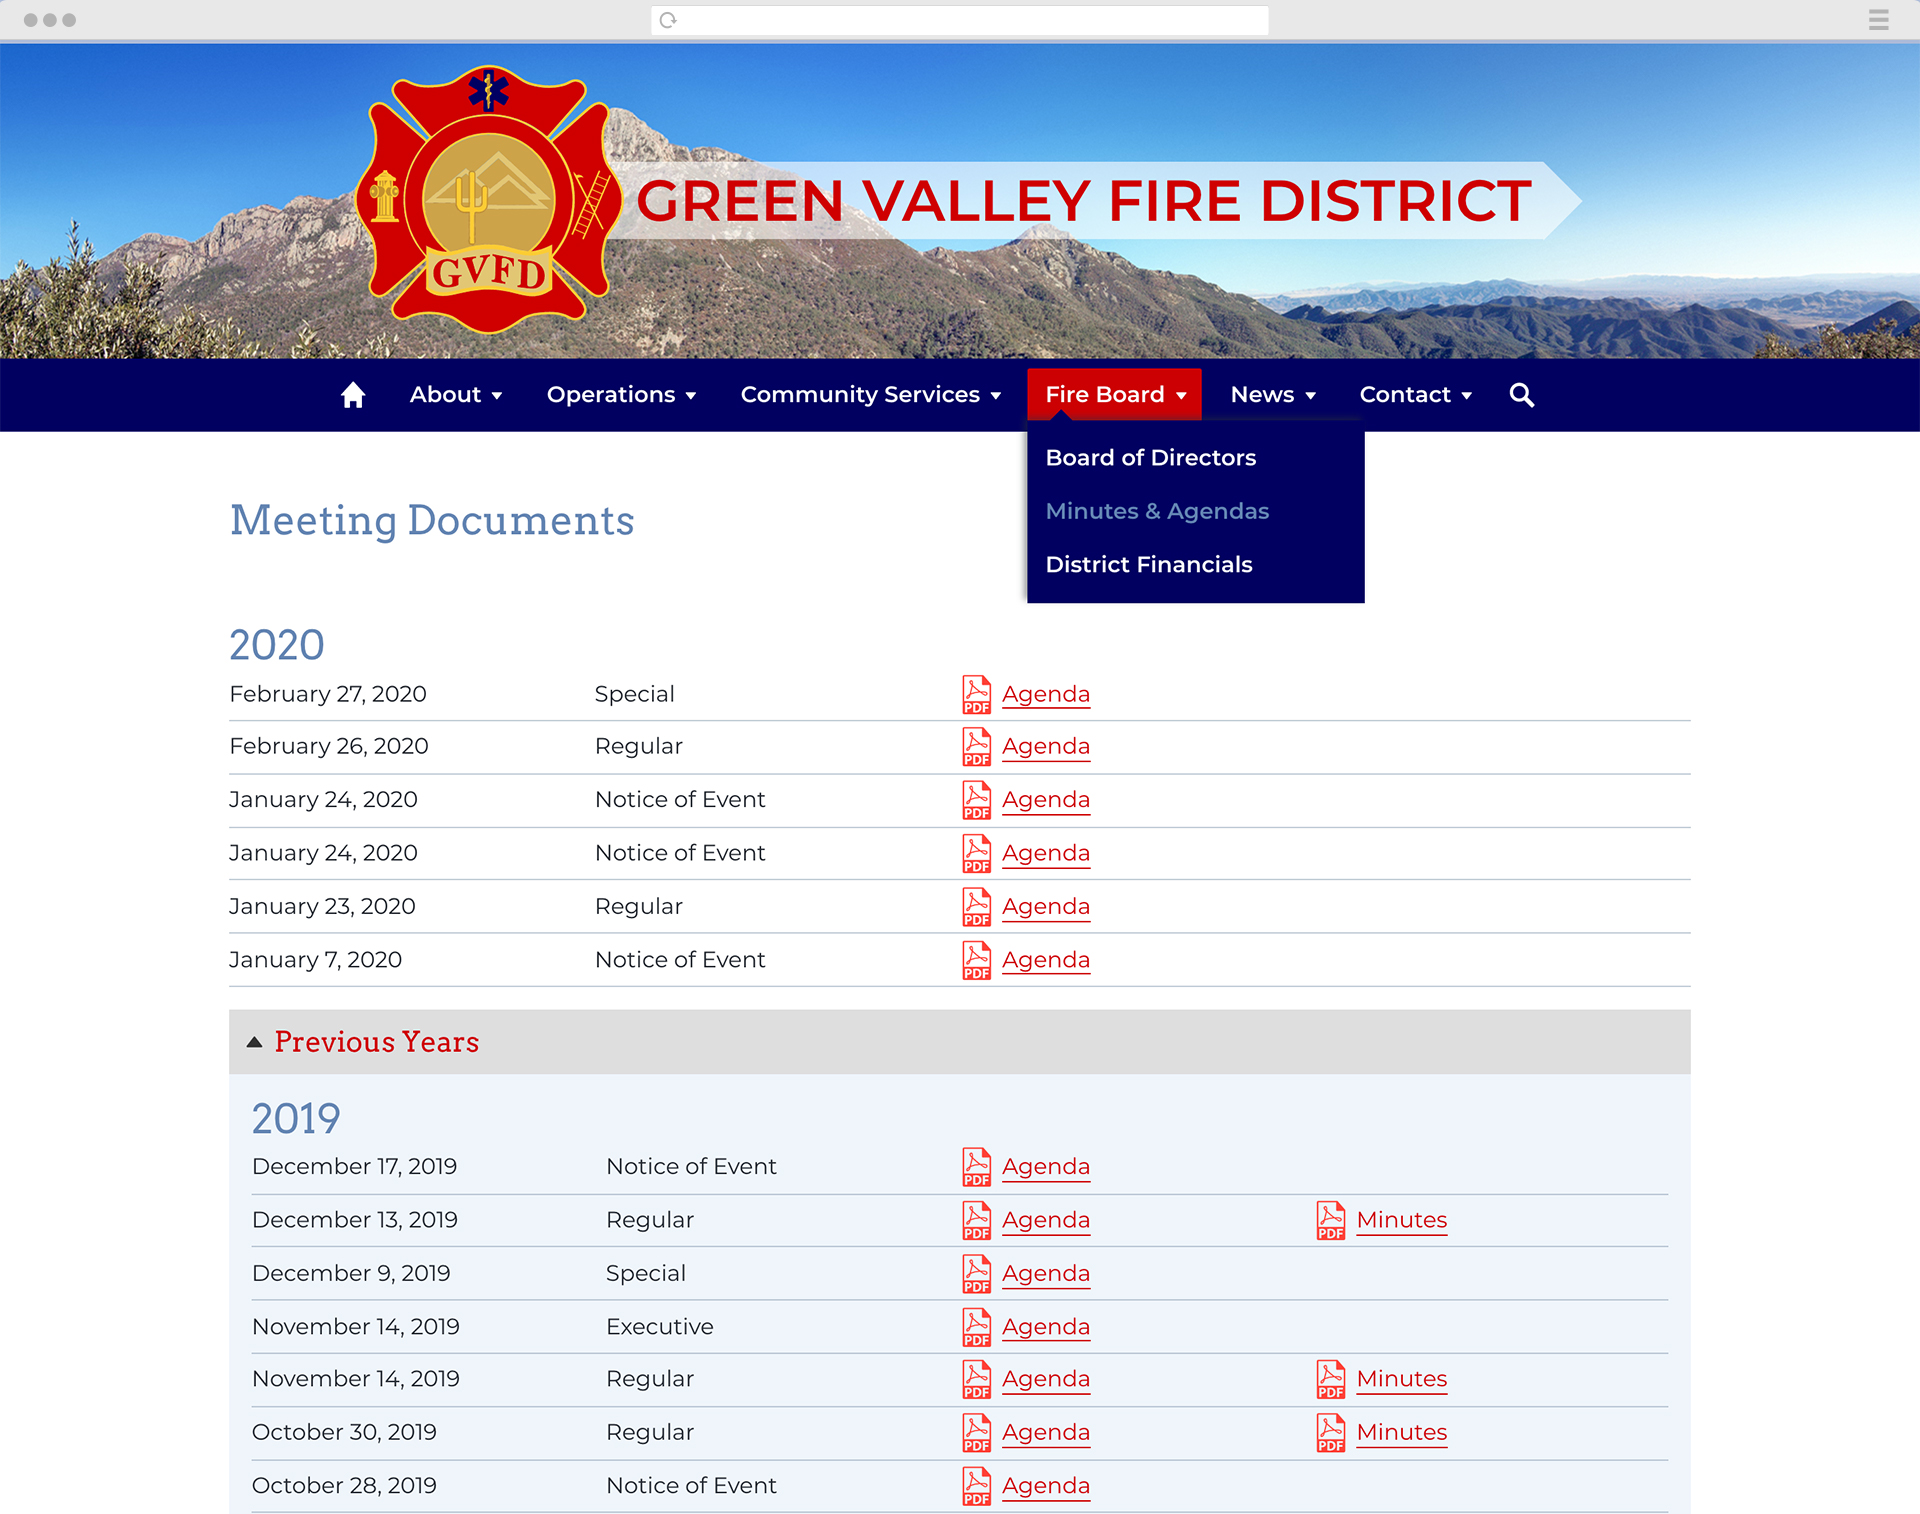 Green Valley Fire District website